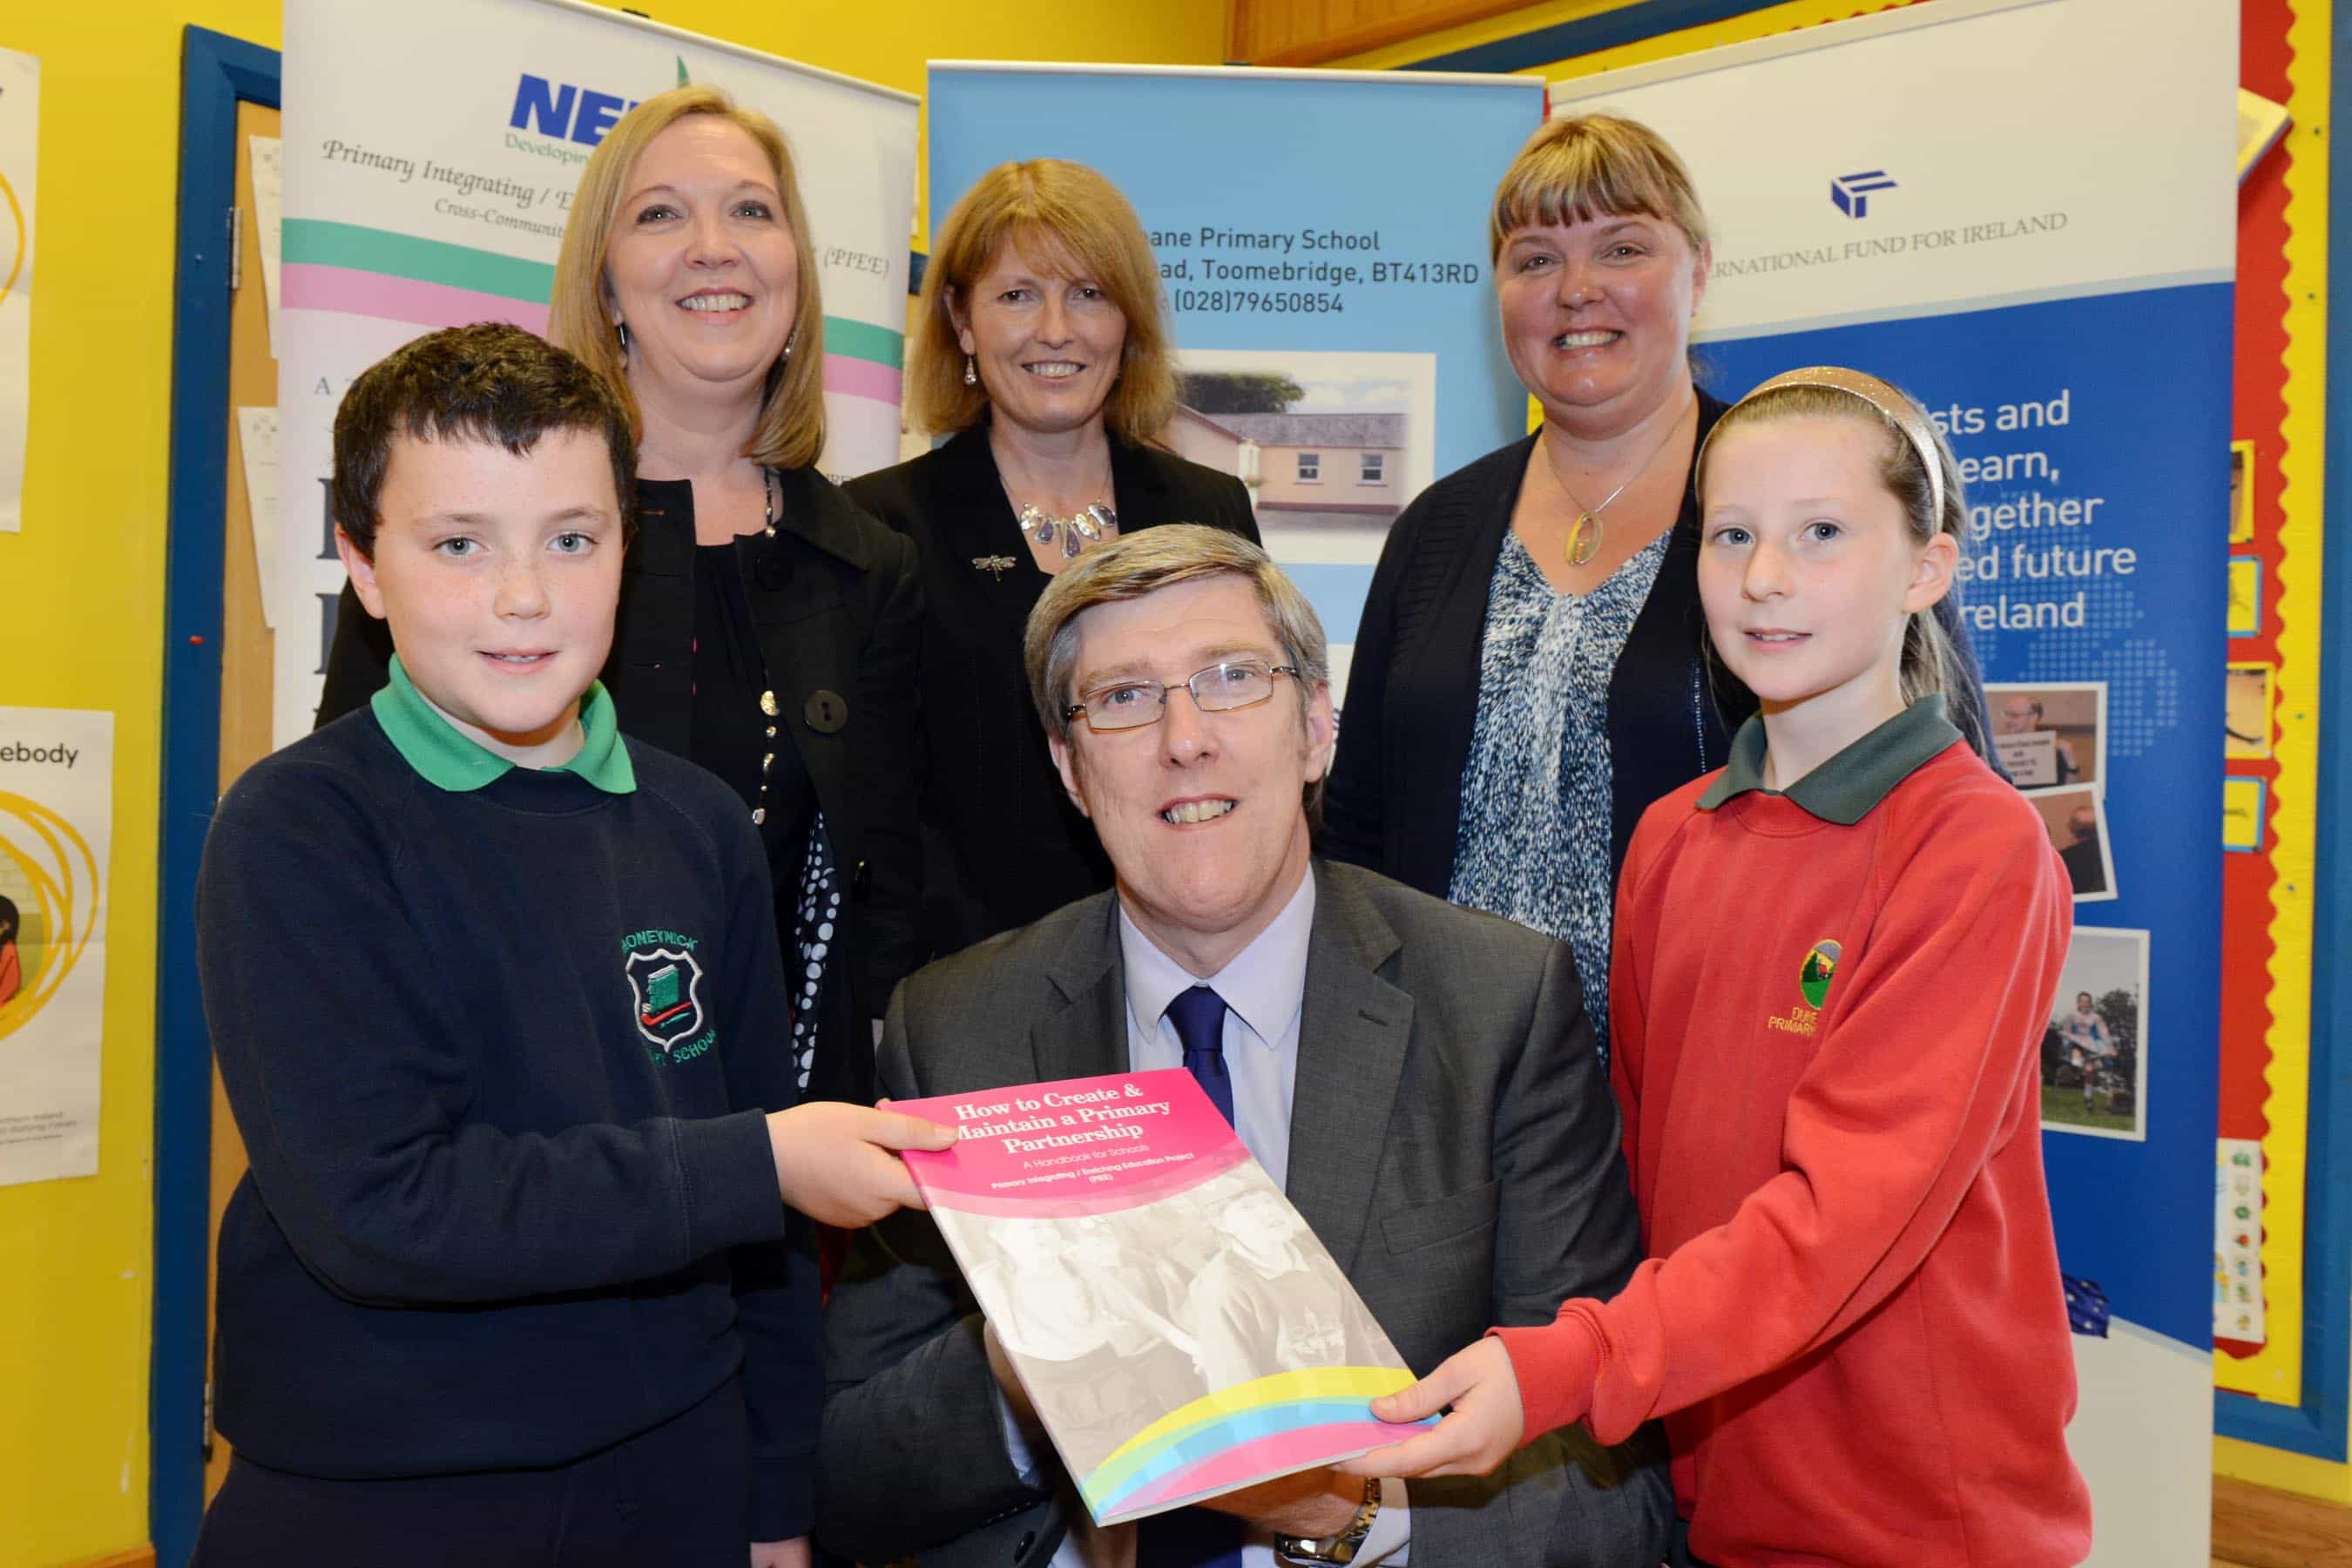 Education Minister hails shared approach between County Antrim primary schools